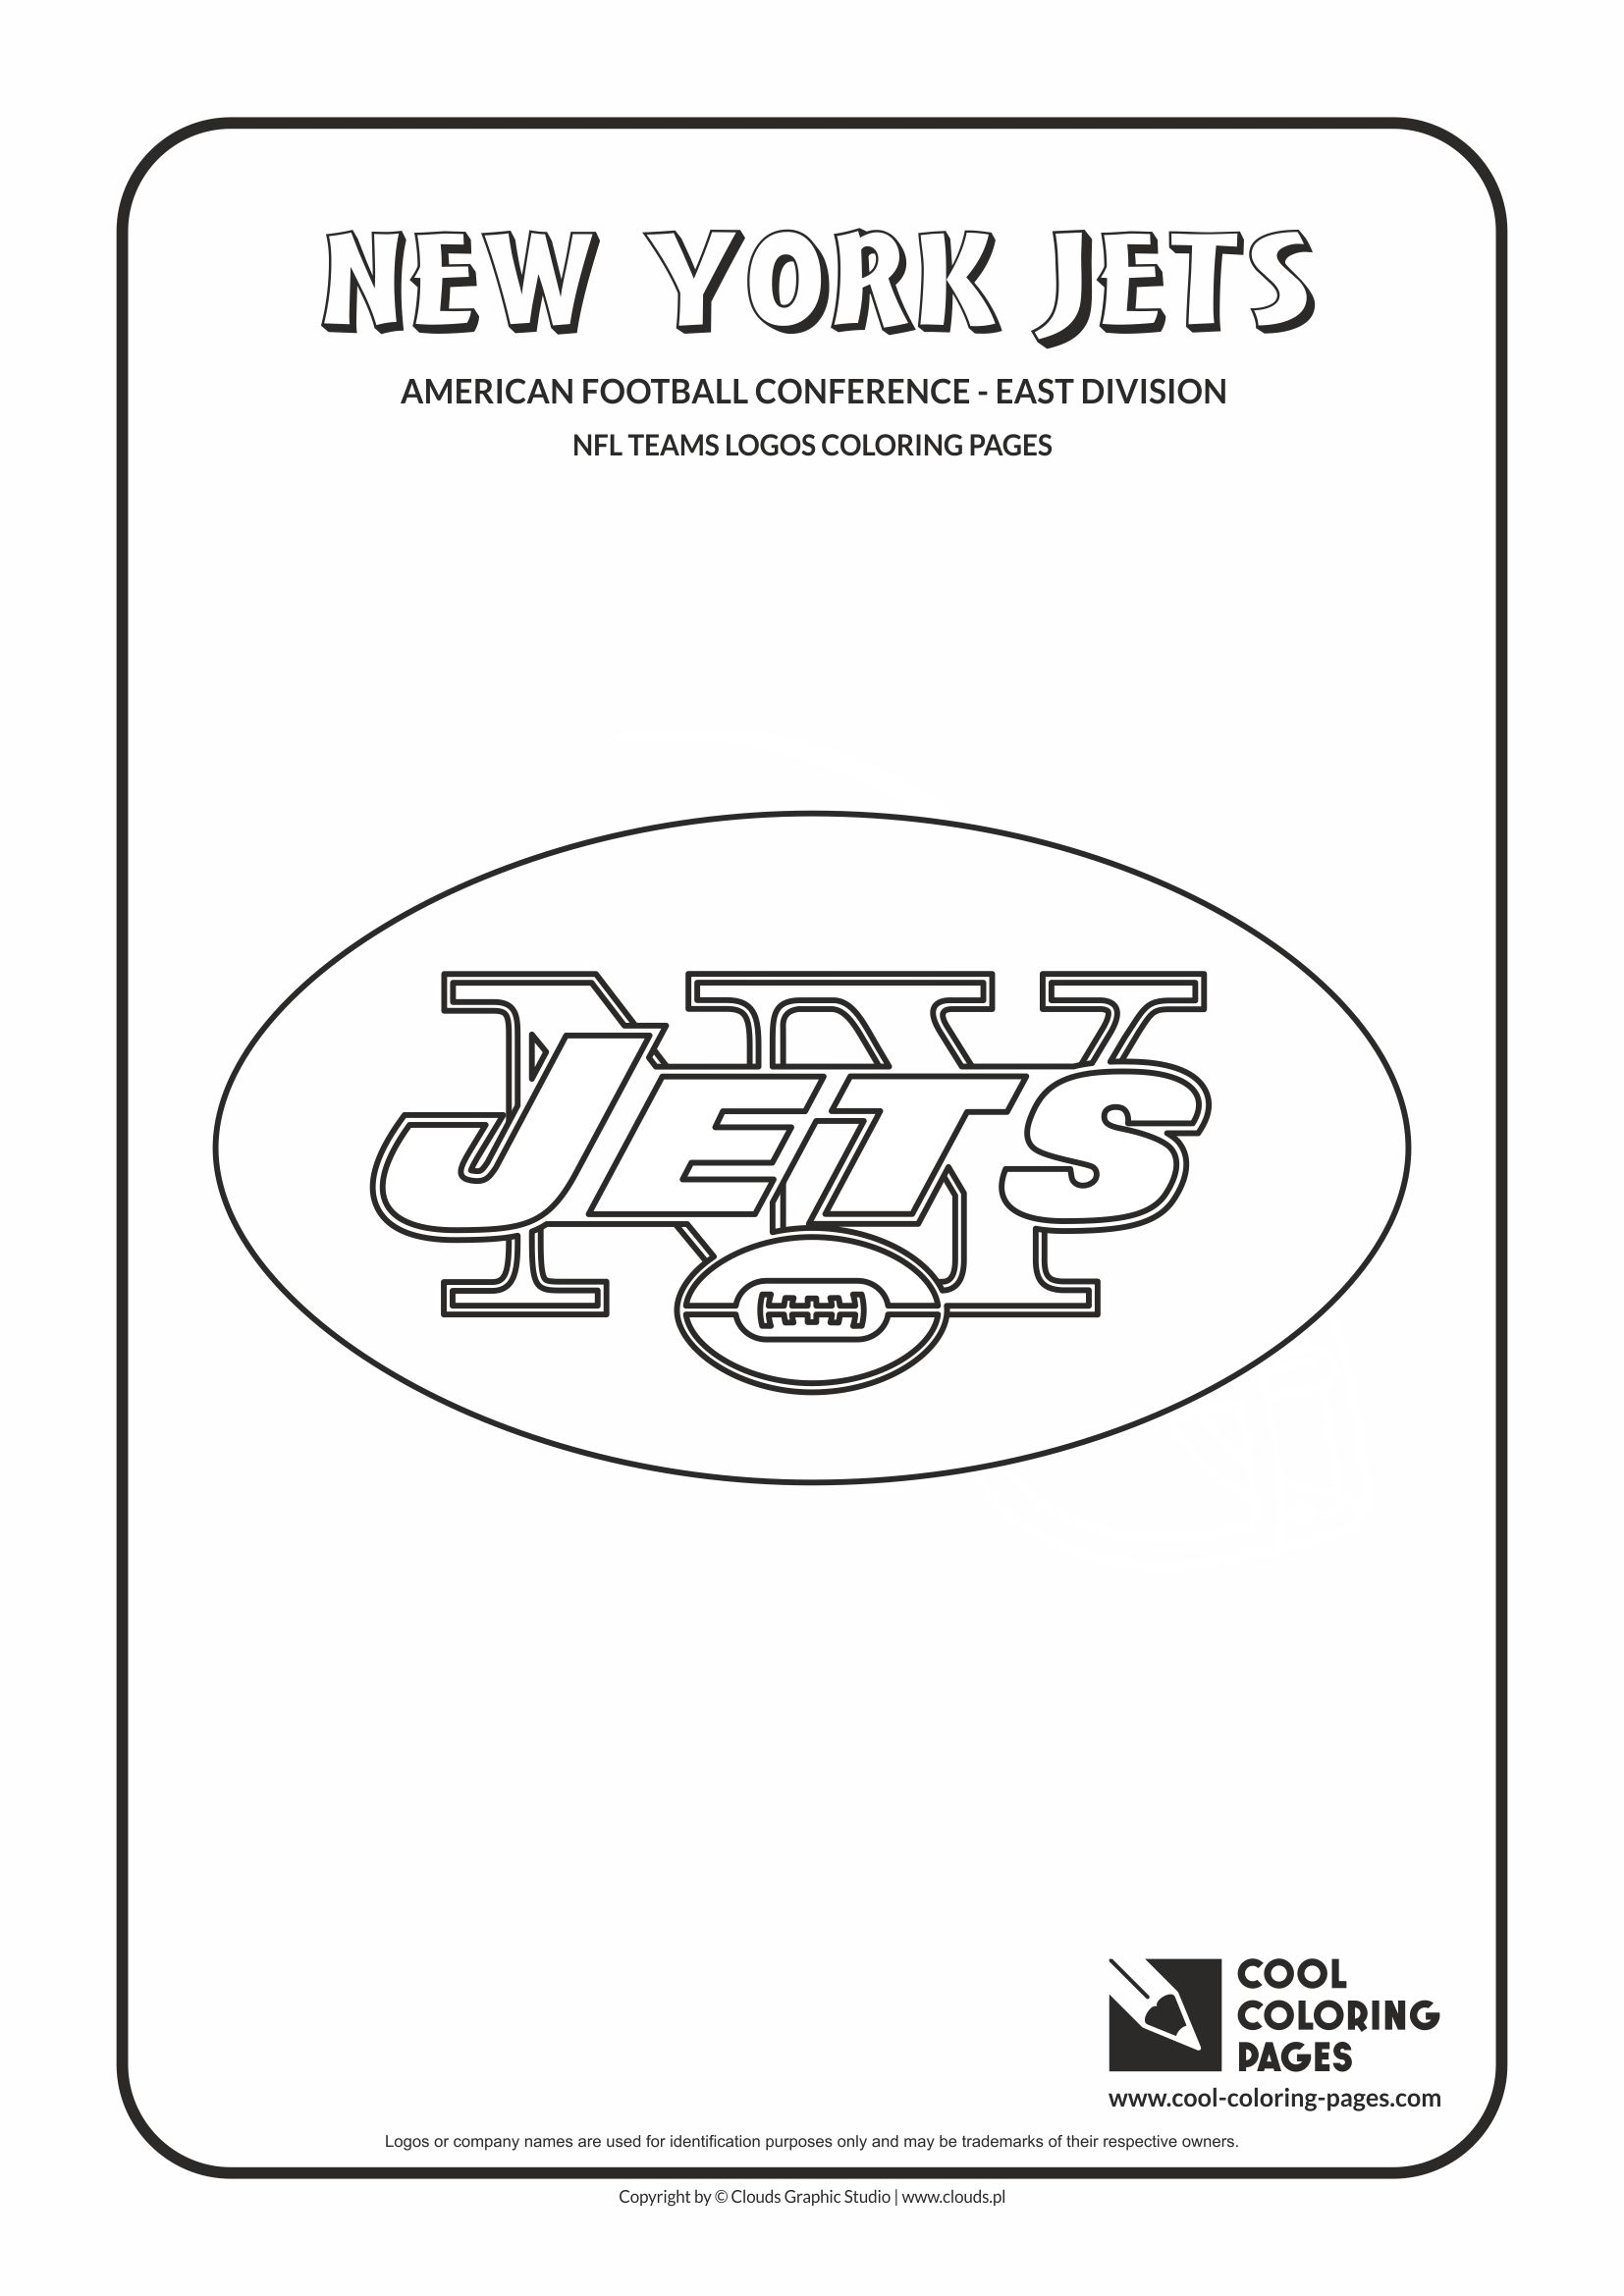 Cool Coloring Pages - NFL American Football Clubs Logos - American Football Conference - East Division / New York Jets logo / Coloring page with New York Jets logo